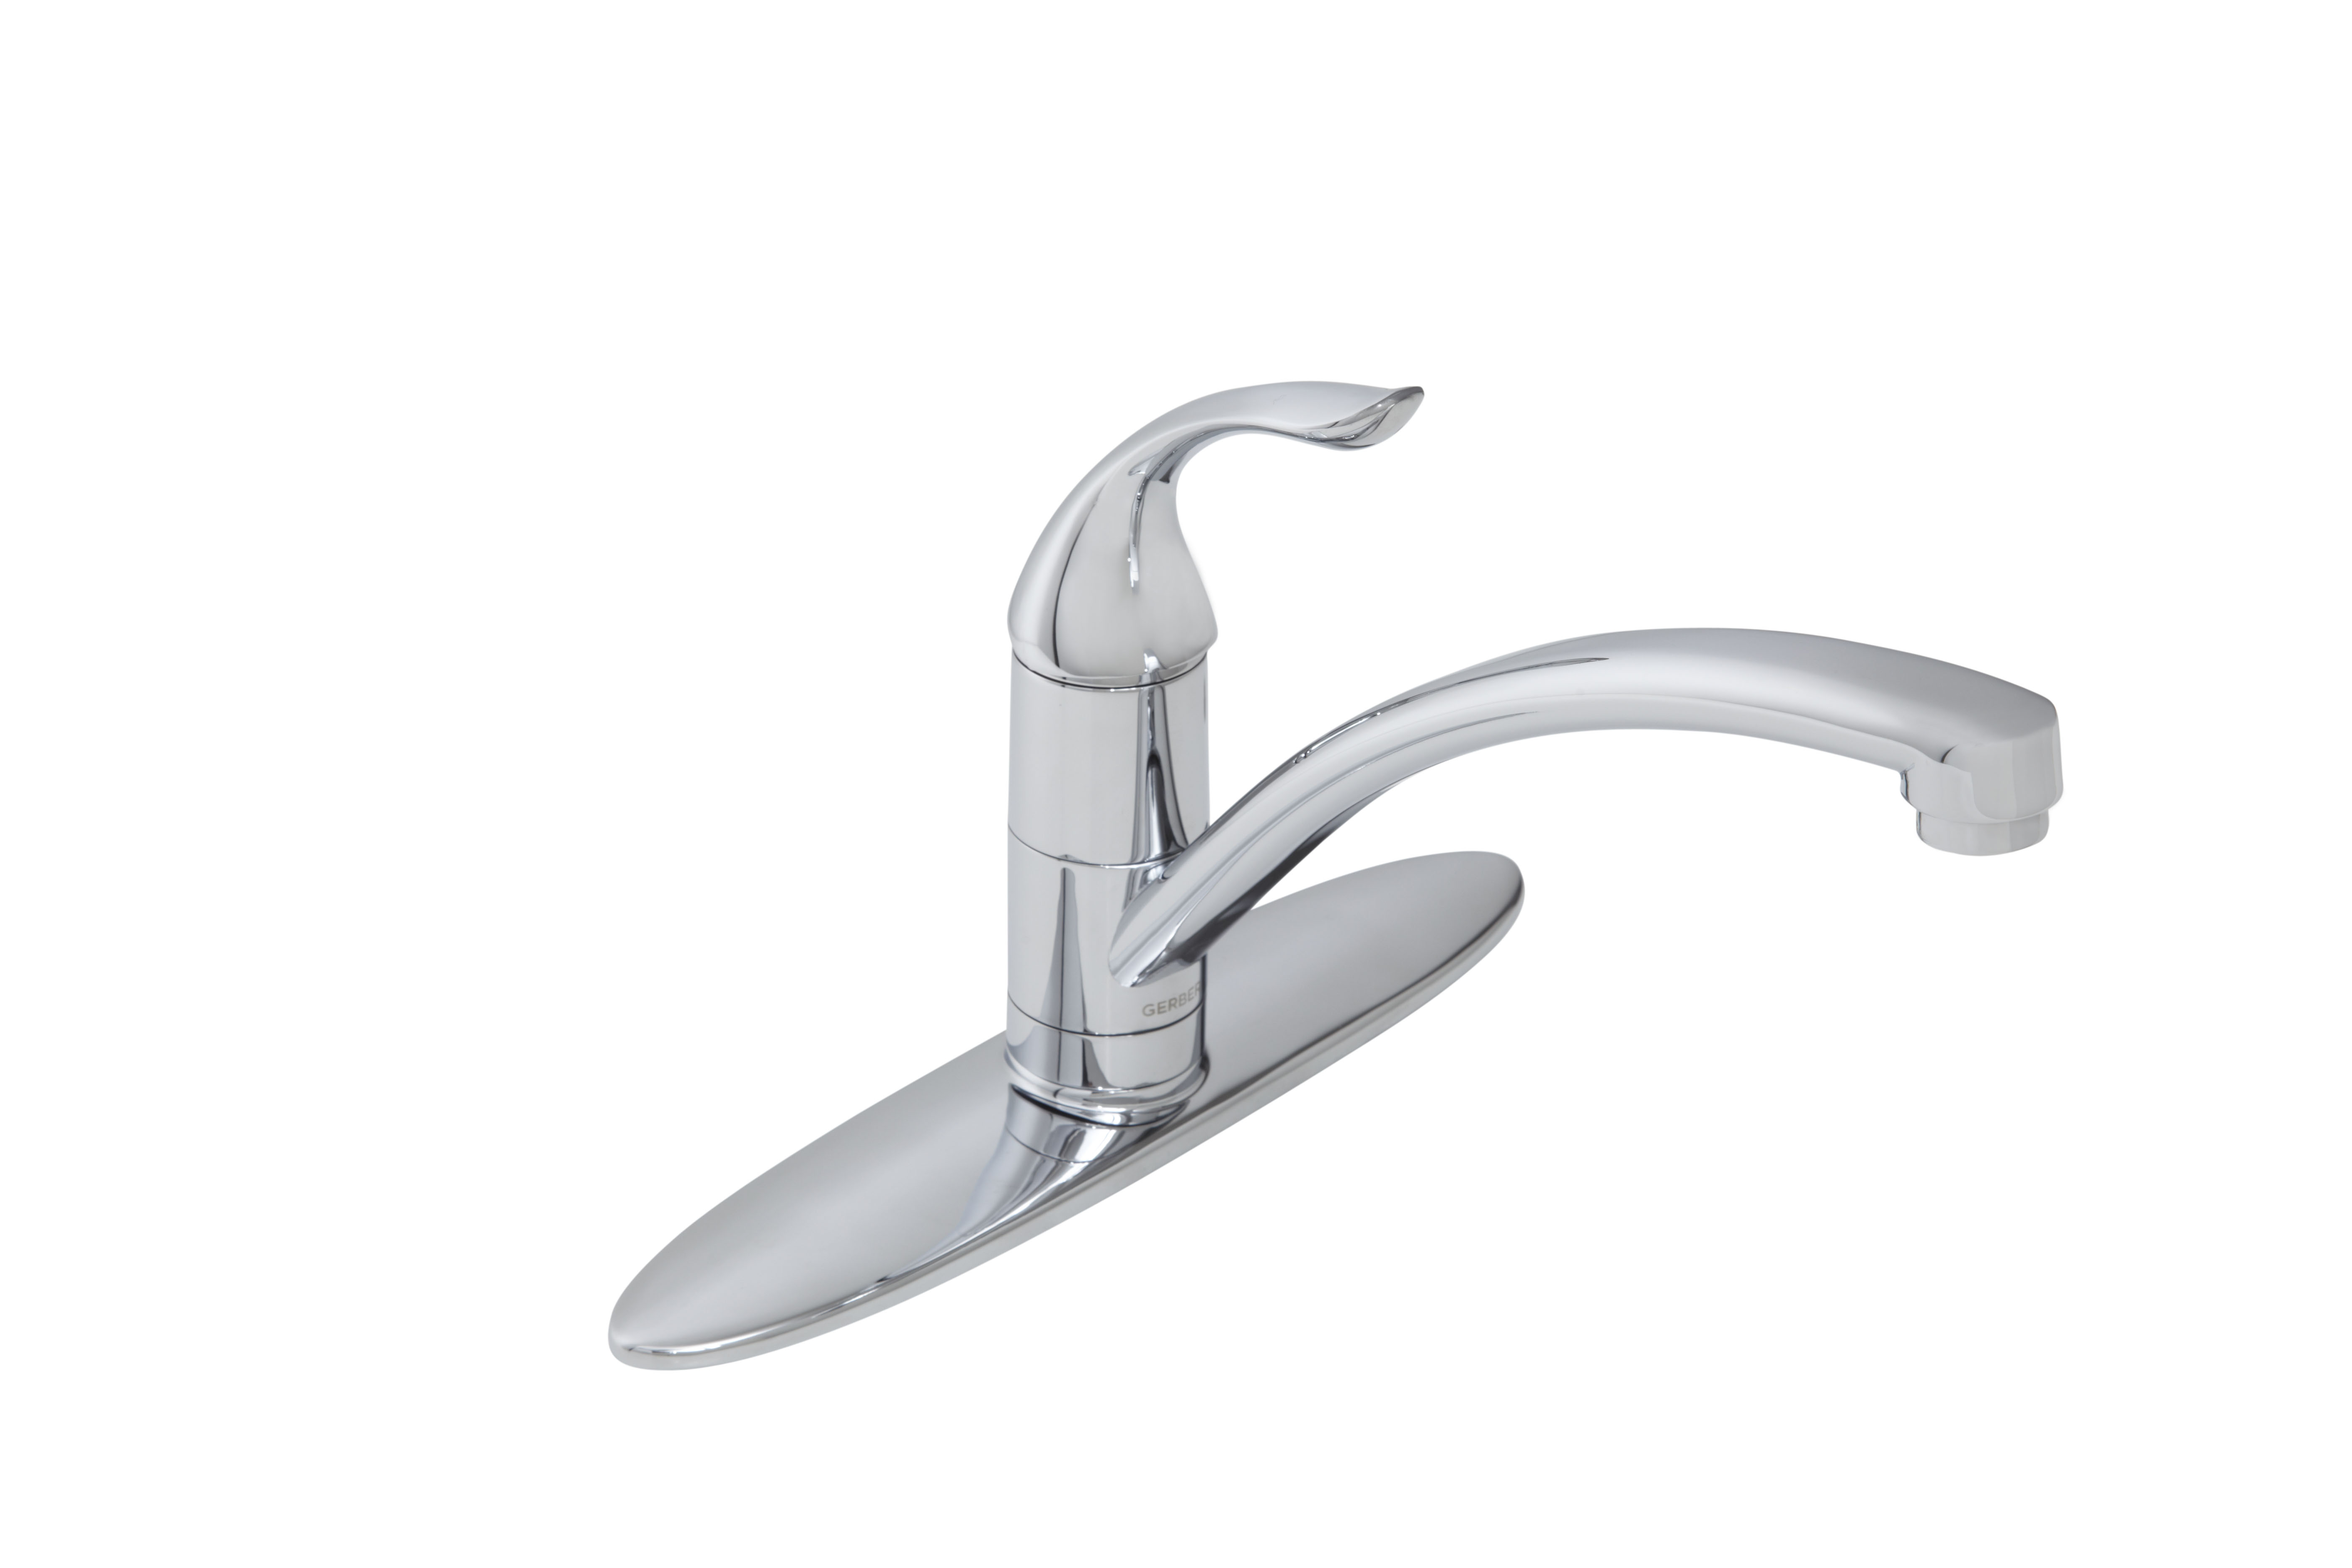 Older Moen Kitchen Faucets discontinued viper™ single handle kitchen faucet | gerber plumbing